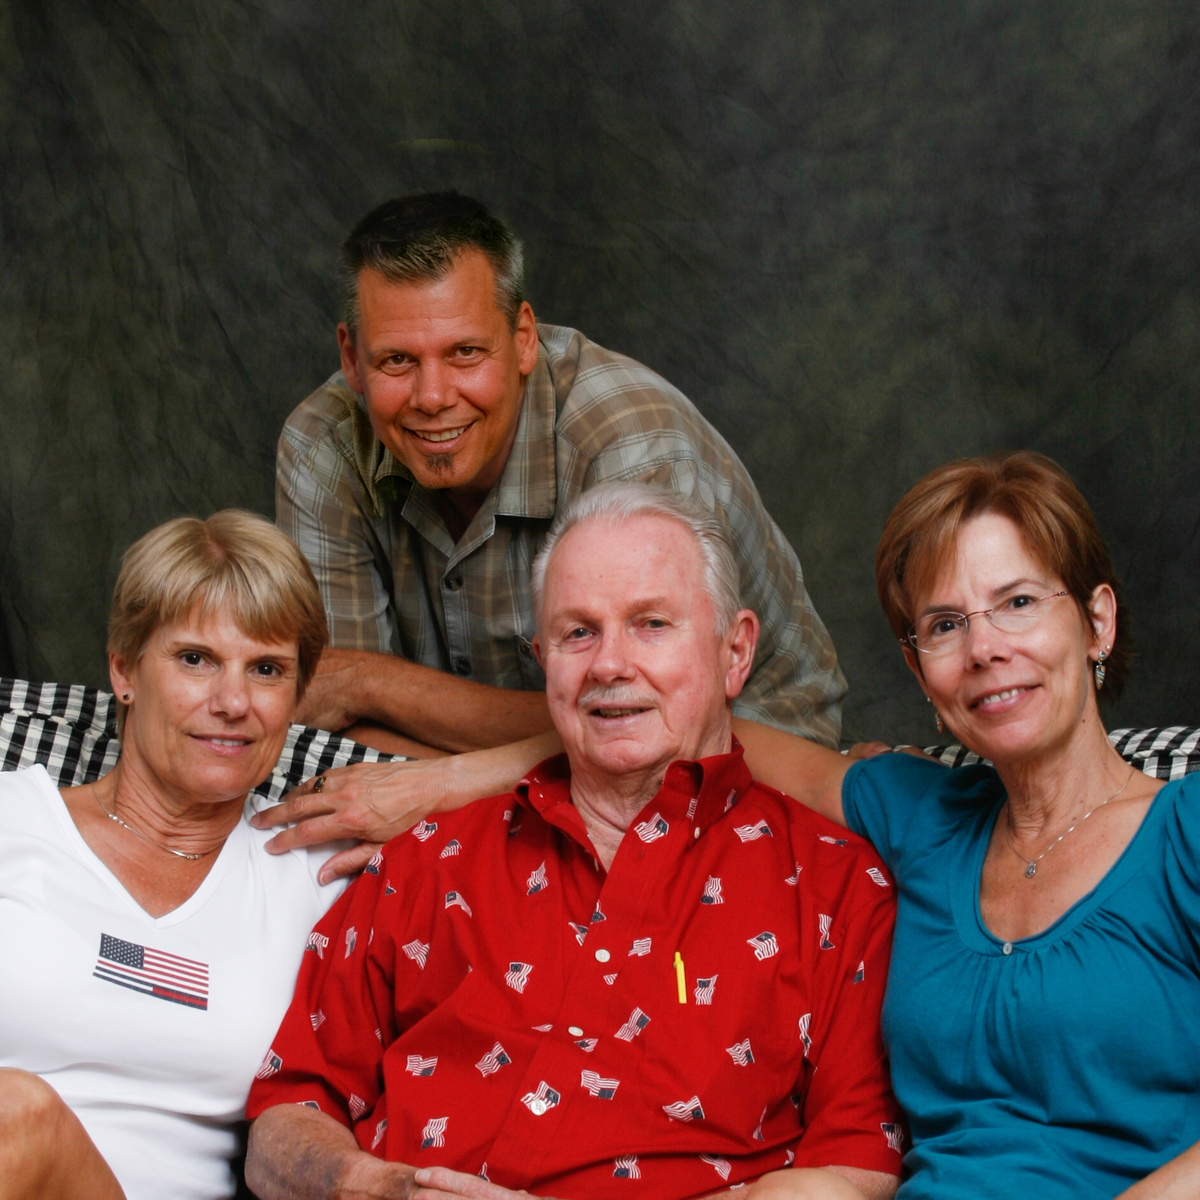 Janet, John, Jeannie and Gene (CW from left)